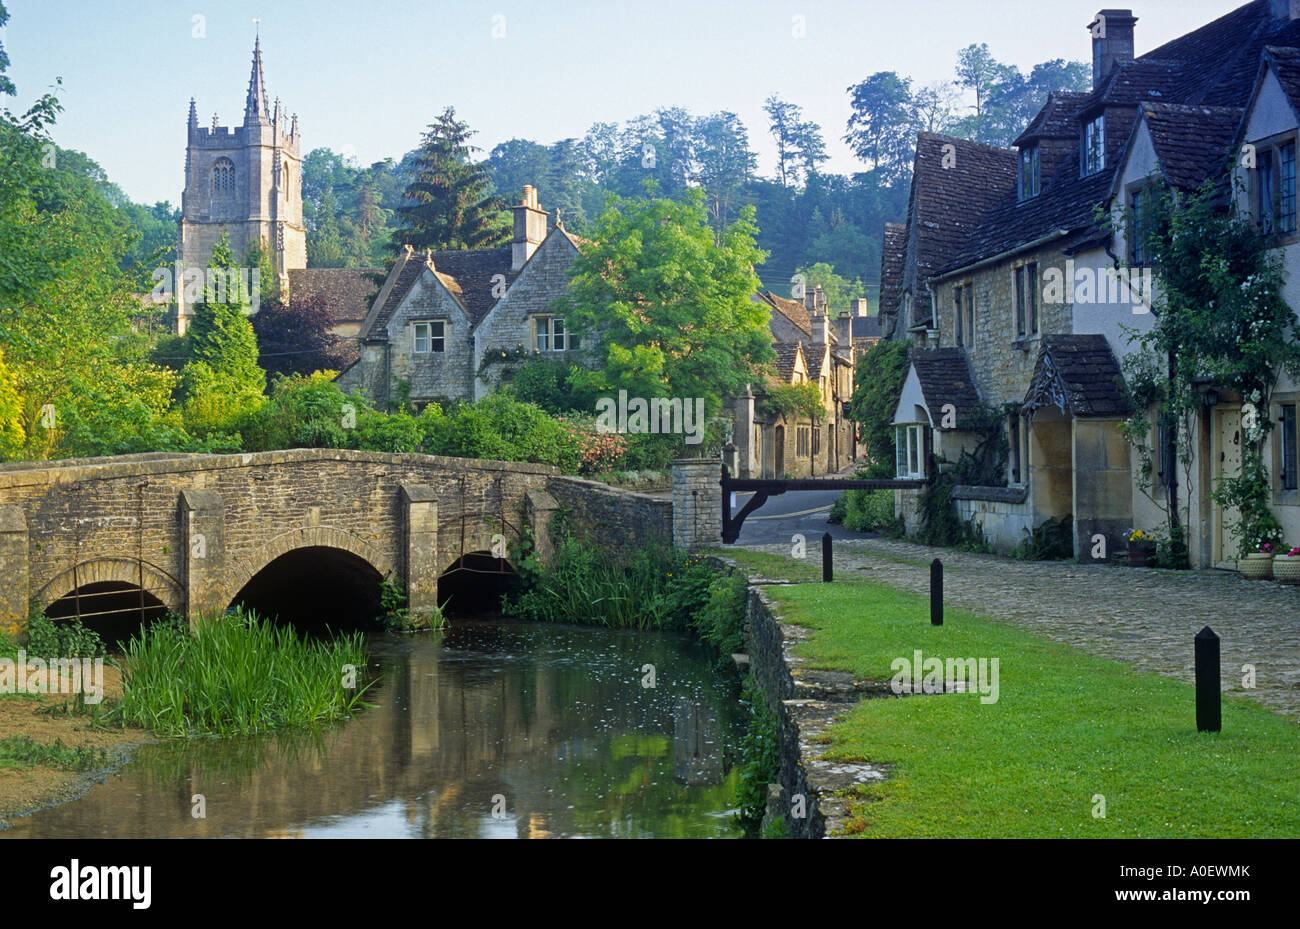 Castle Combe The Cotswolds Wiltshire England Stock Photo Royalty Free Image 9974850 Alamy